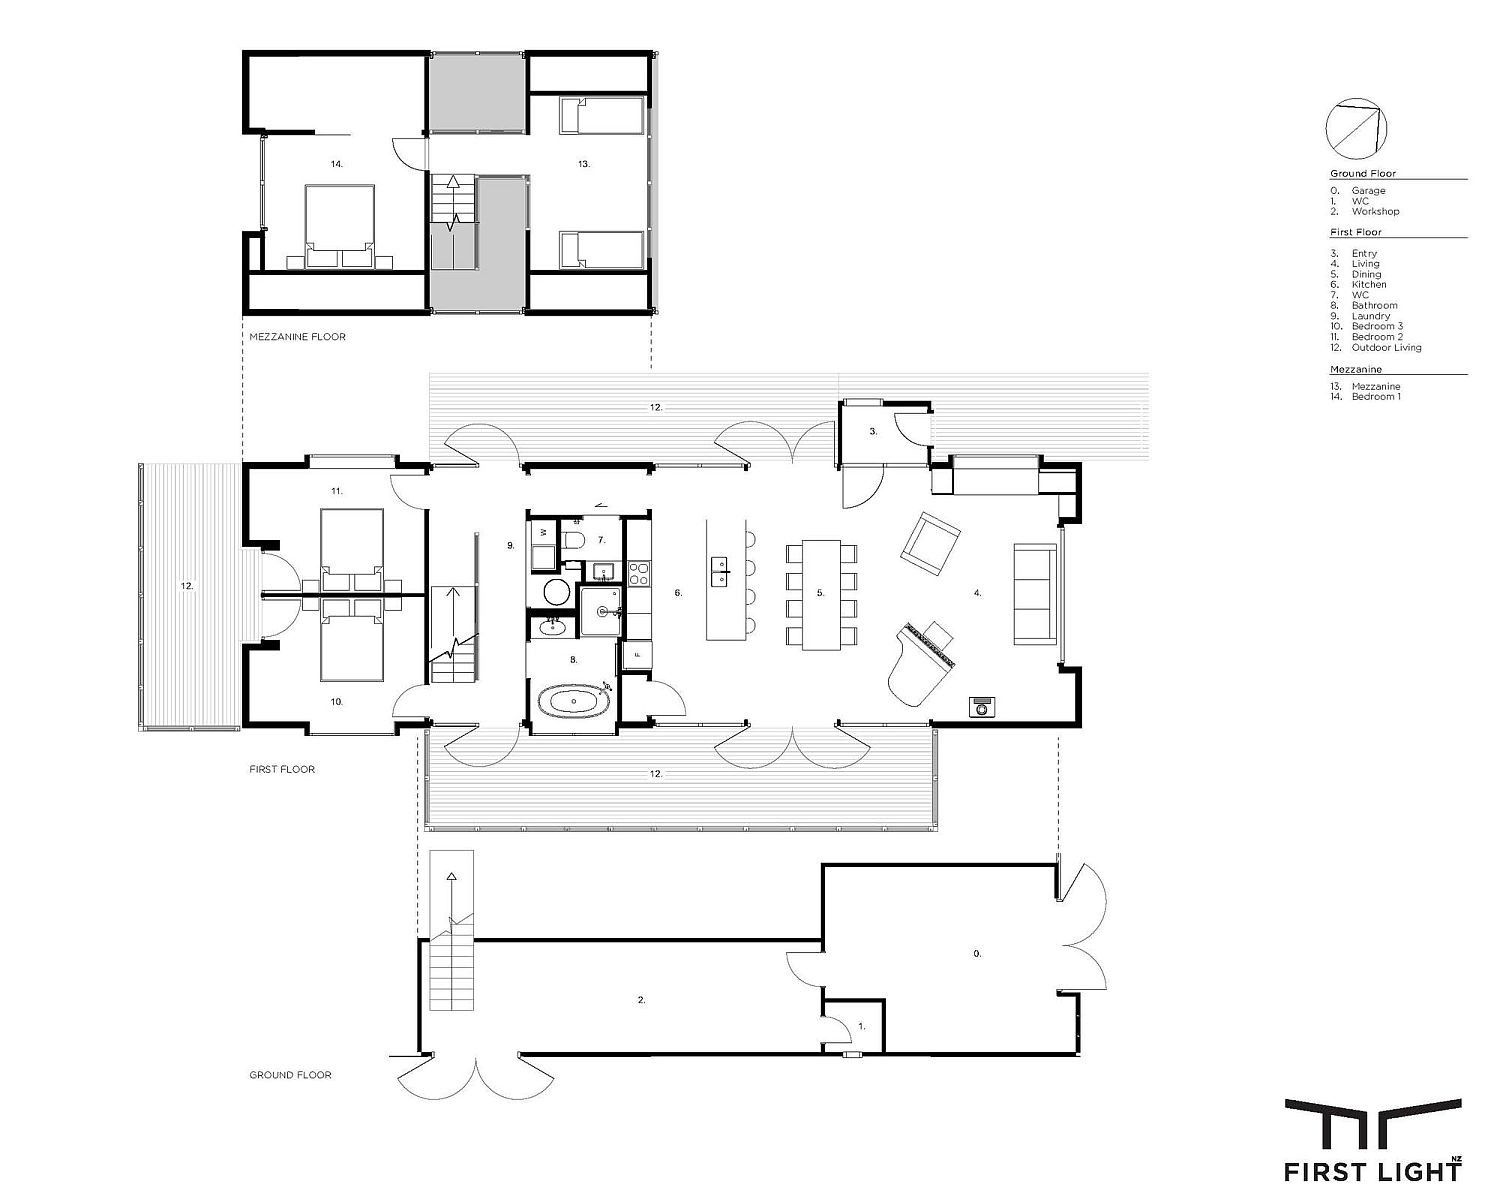 Floor plan of Governors Bay House